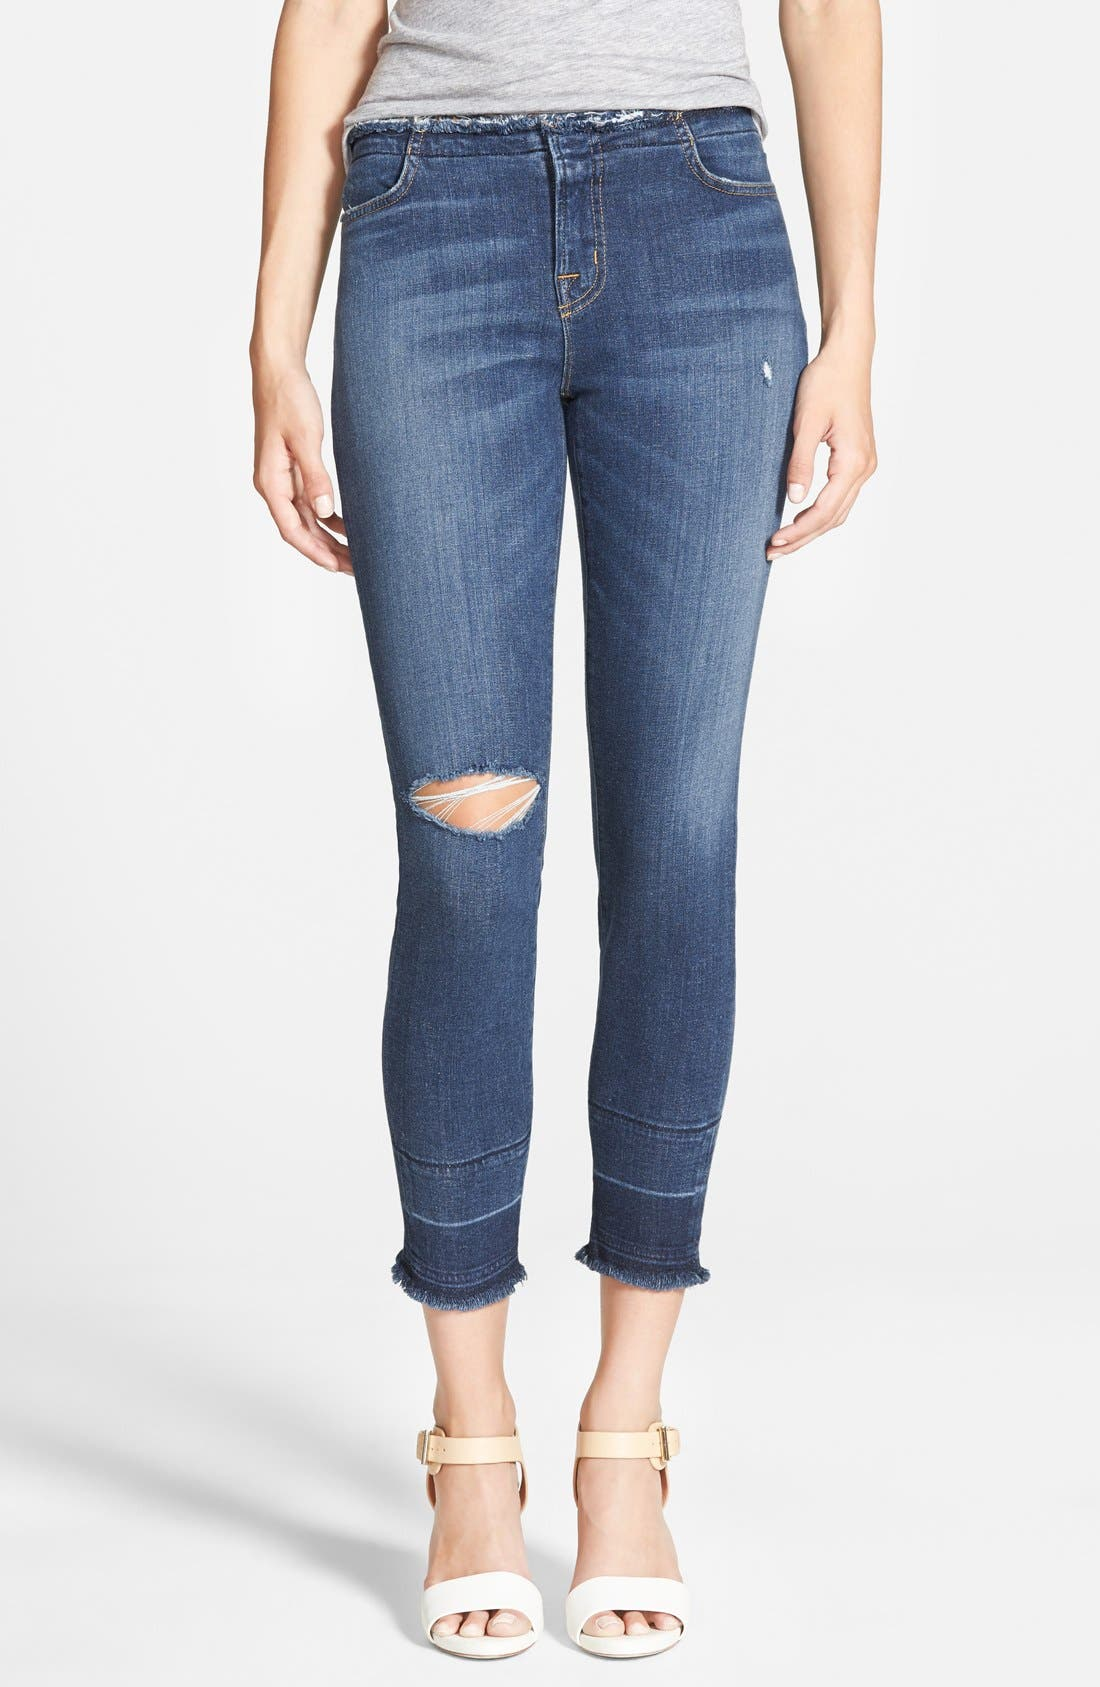 Alternate Image 1 Selected - J Brand Mid Rise Capri Jeans